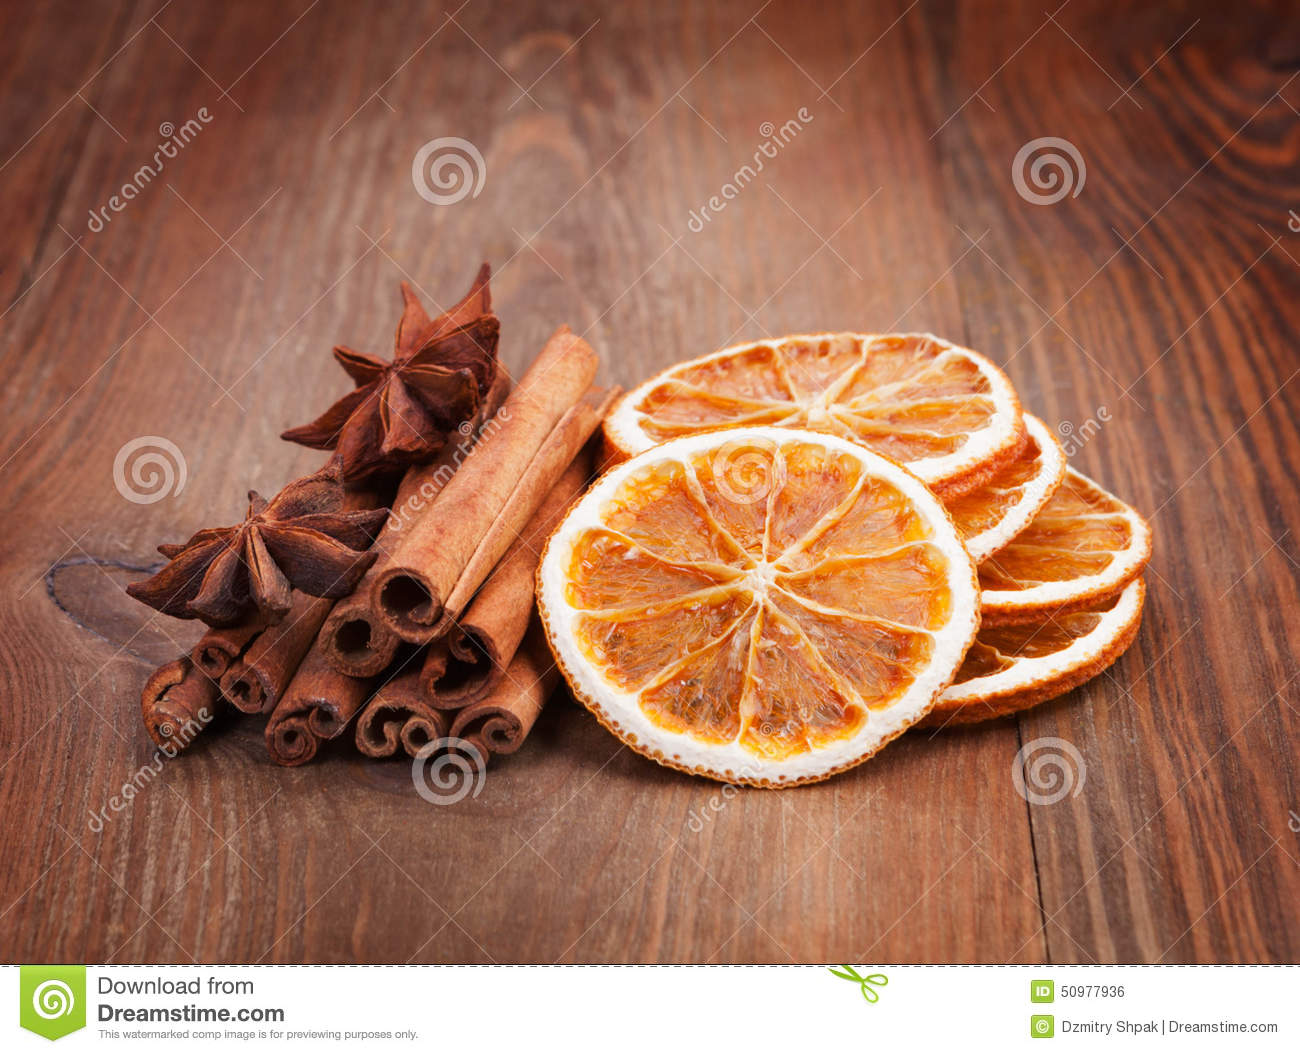 Christmas decoration dried orange cinnamon sticks for Baking oranges for christmas decoration